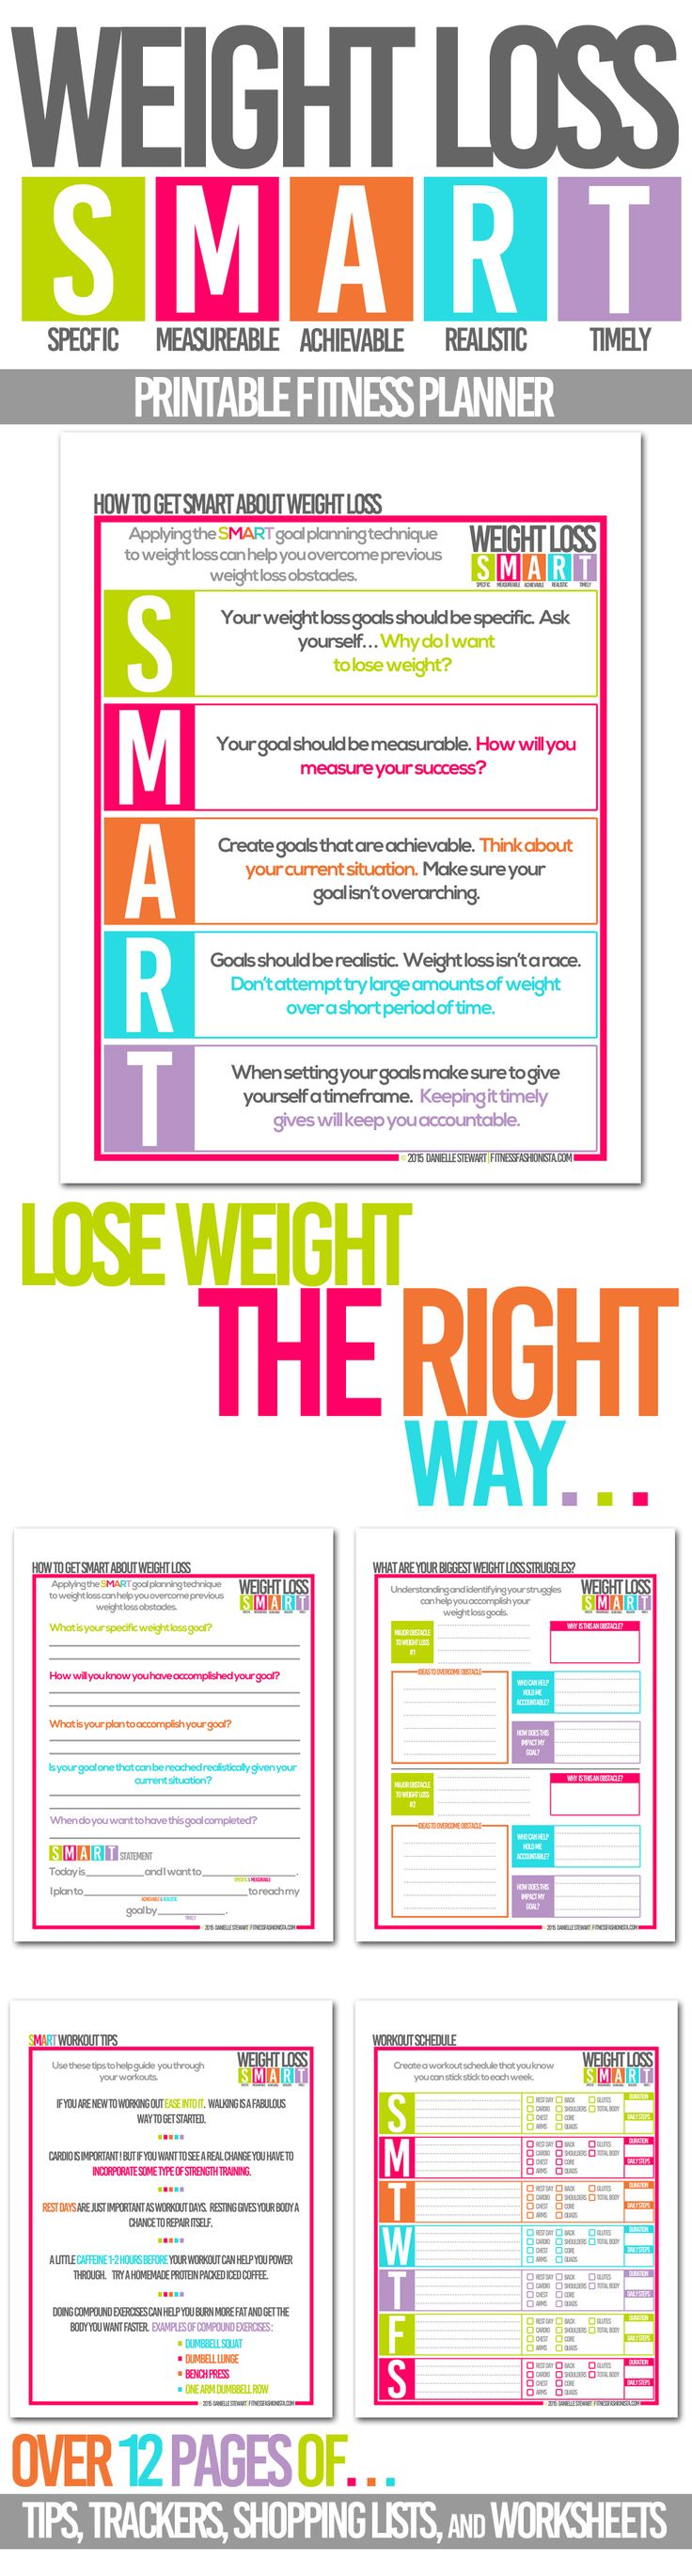 SMART Weight Loss Fitness Planner Printable - Fitness Fashionista